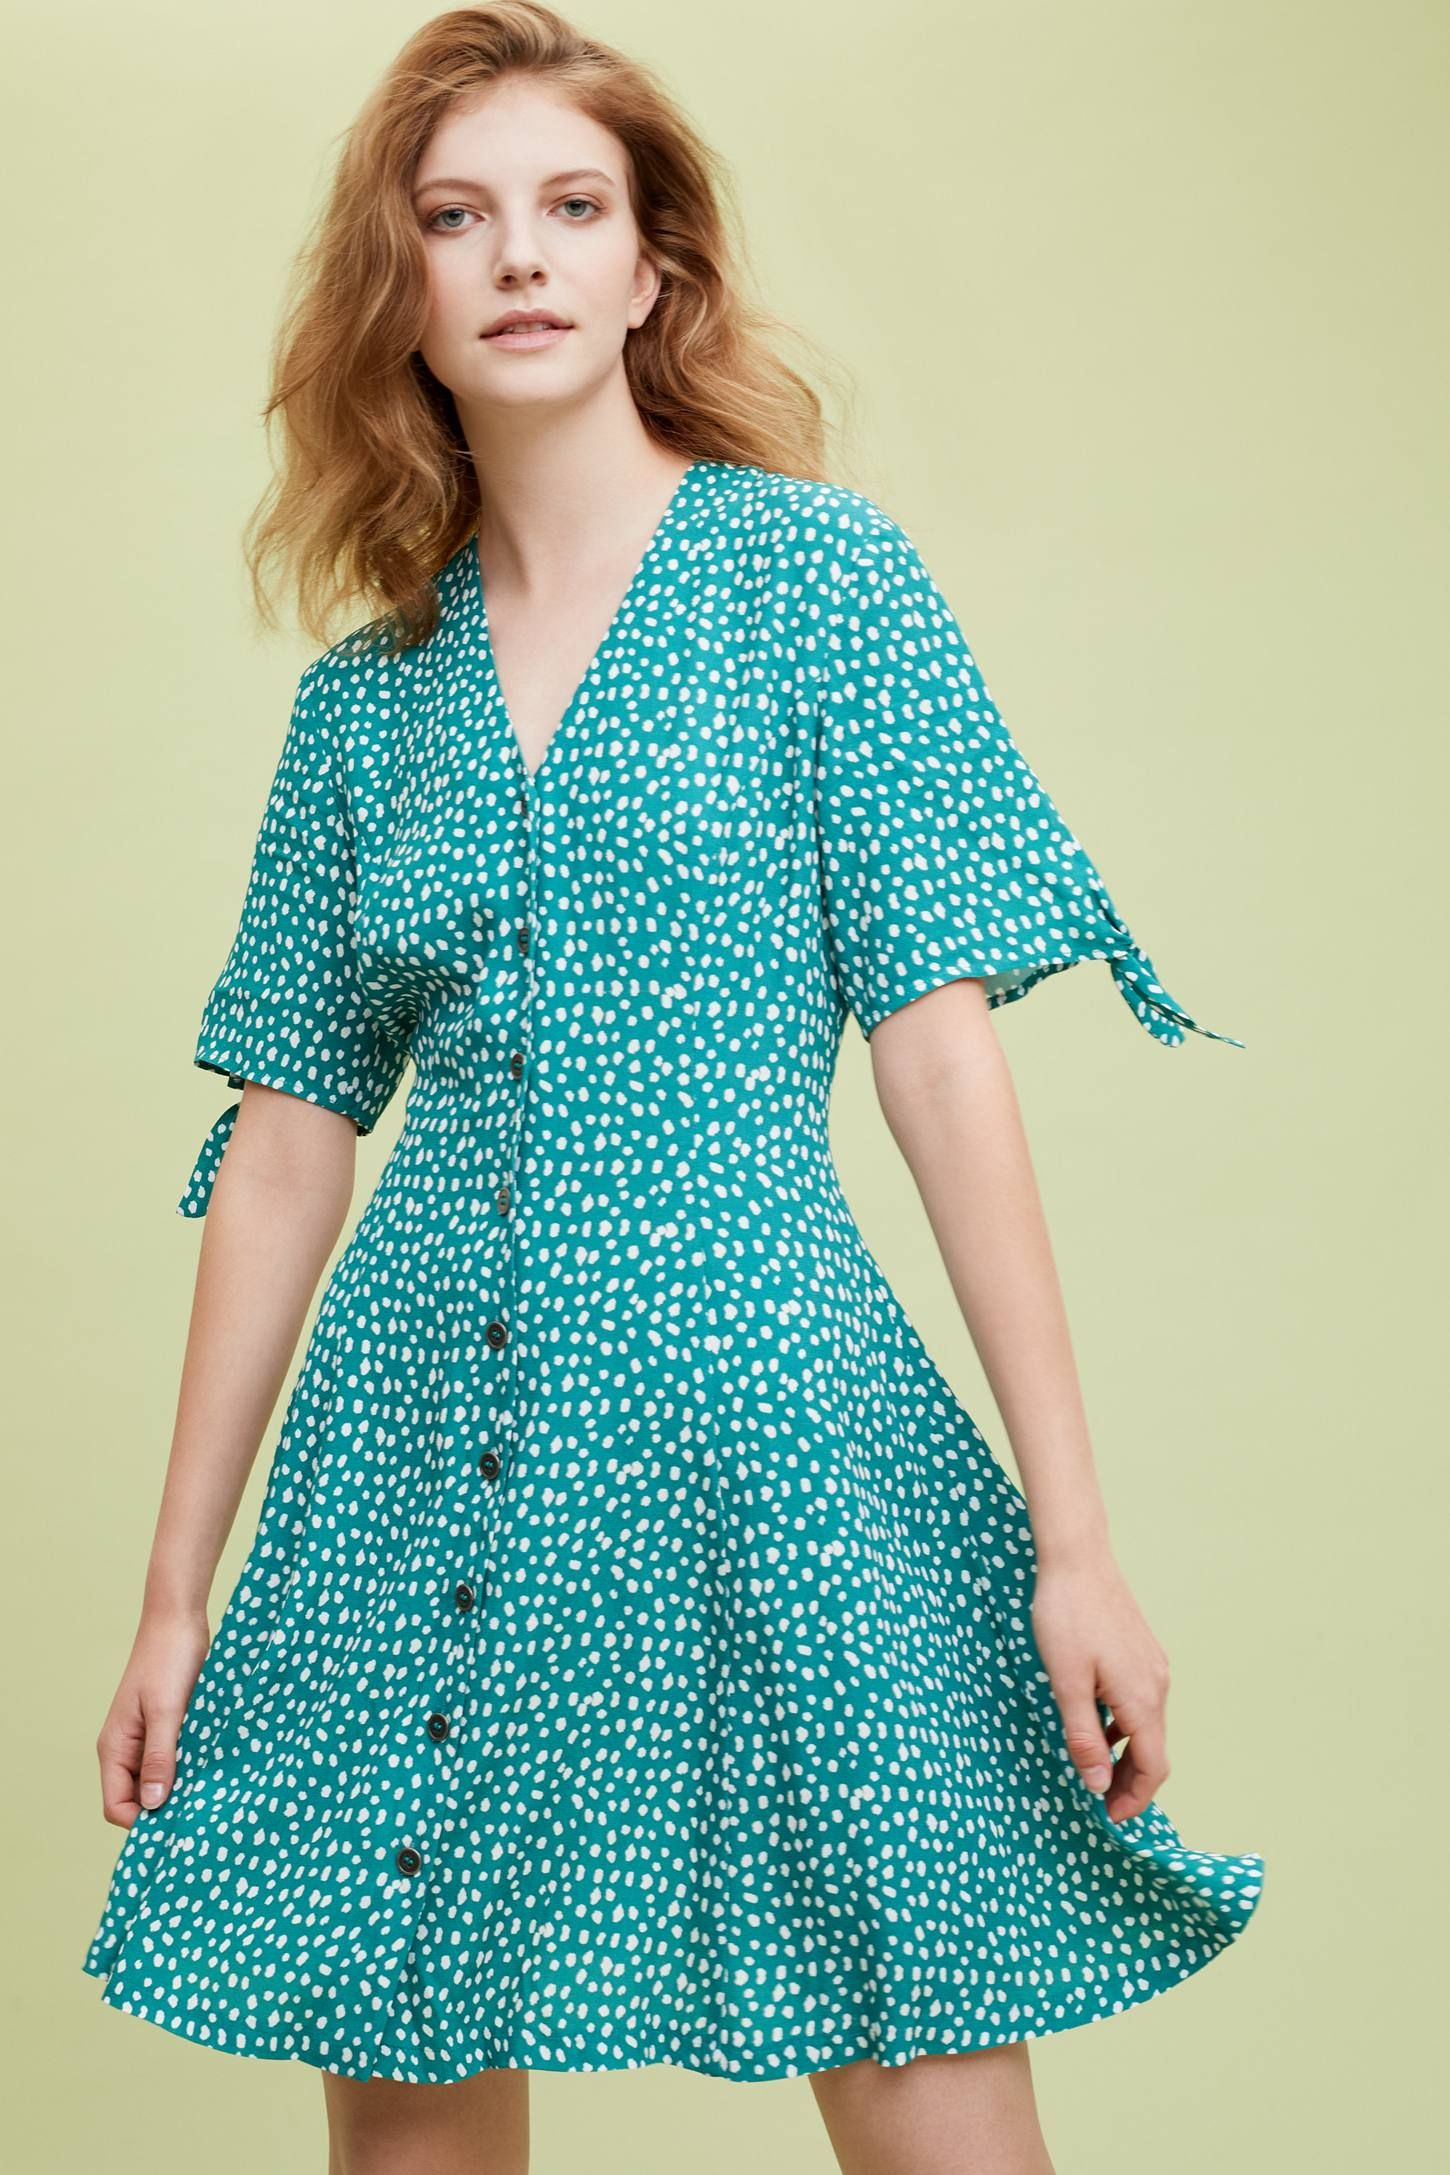 bbf9e28e73b49f Kachel Amerah Polka-Dot Dress